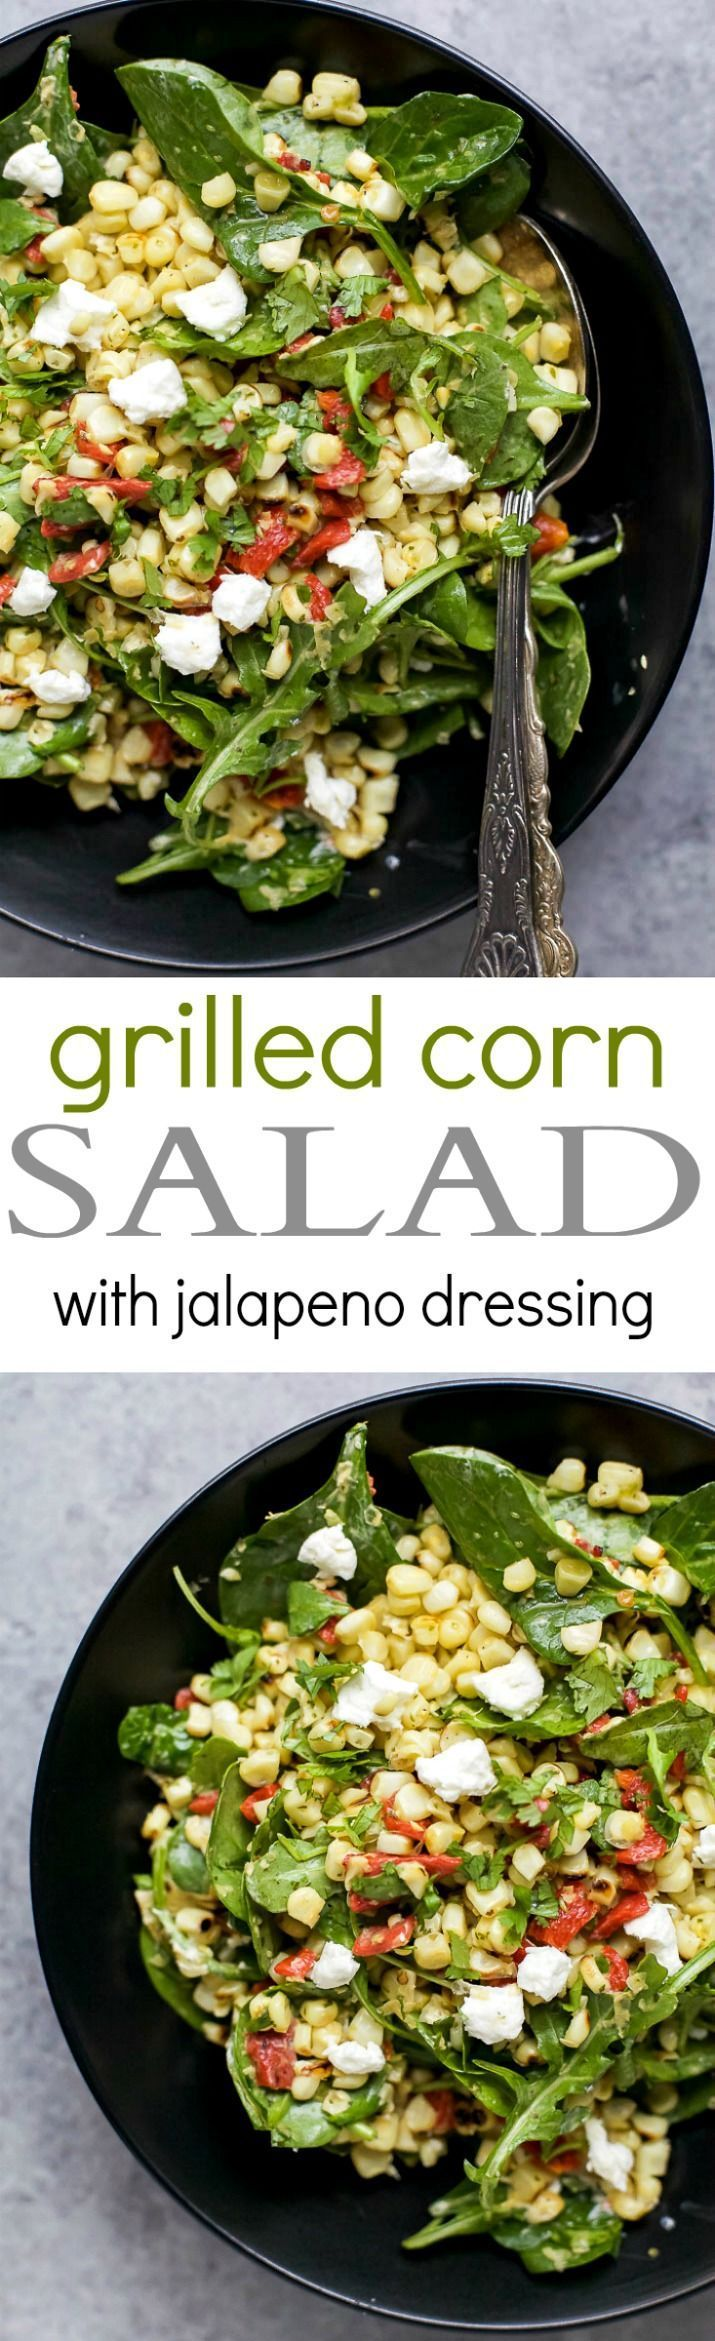 A simple healthy gluten free GRILLED CORN SALAD filled with fresh greens, roasted red pepper, and goat cheese then tossed with a spicy JALAPENO DRESSING. This Corn Salad is the ultimate side dish of the summer!